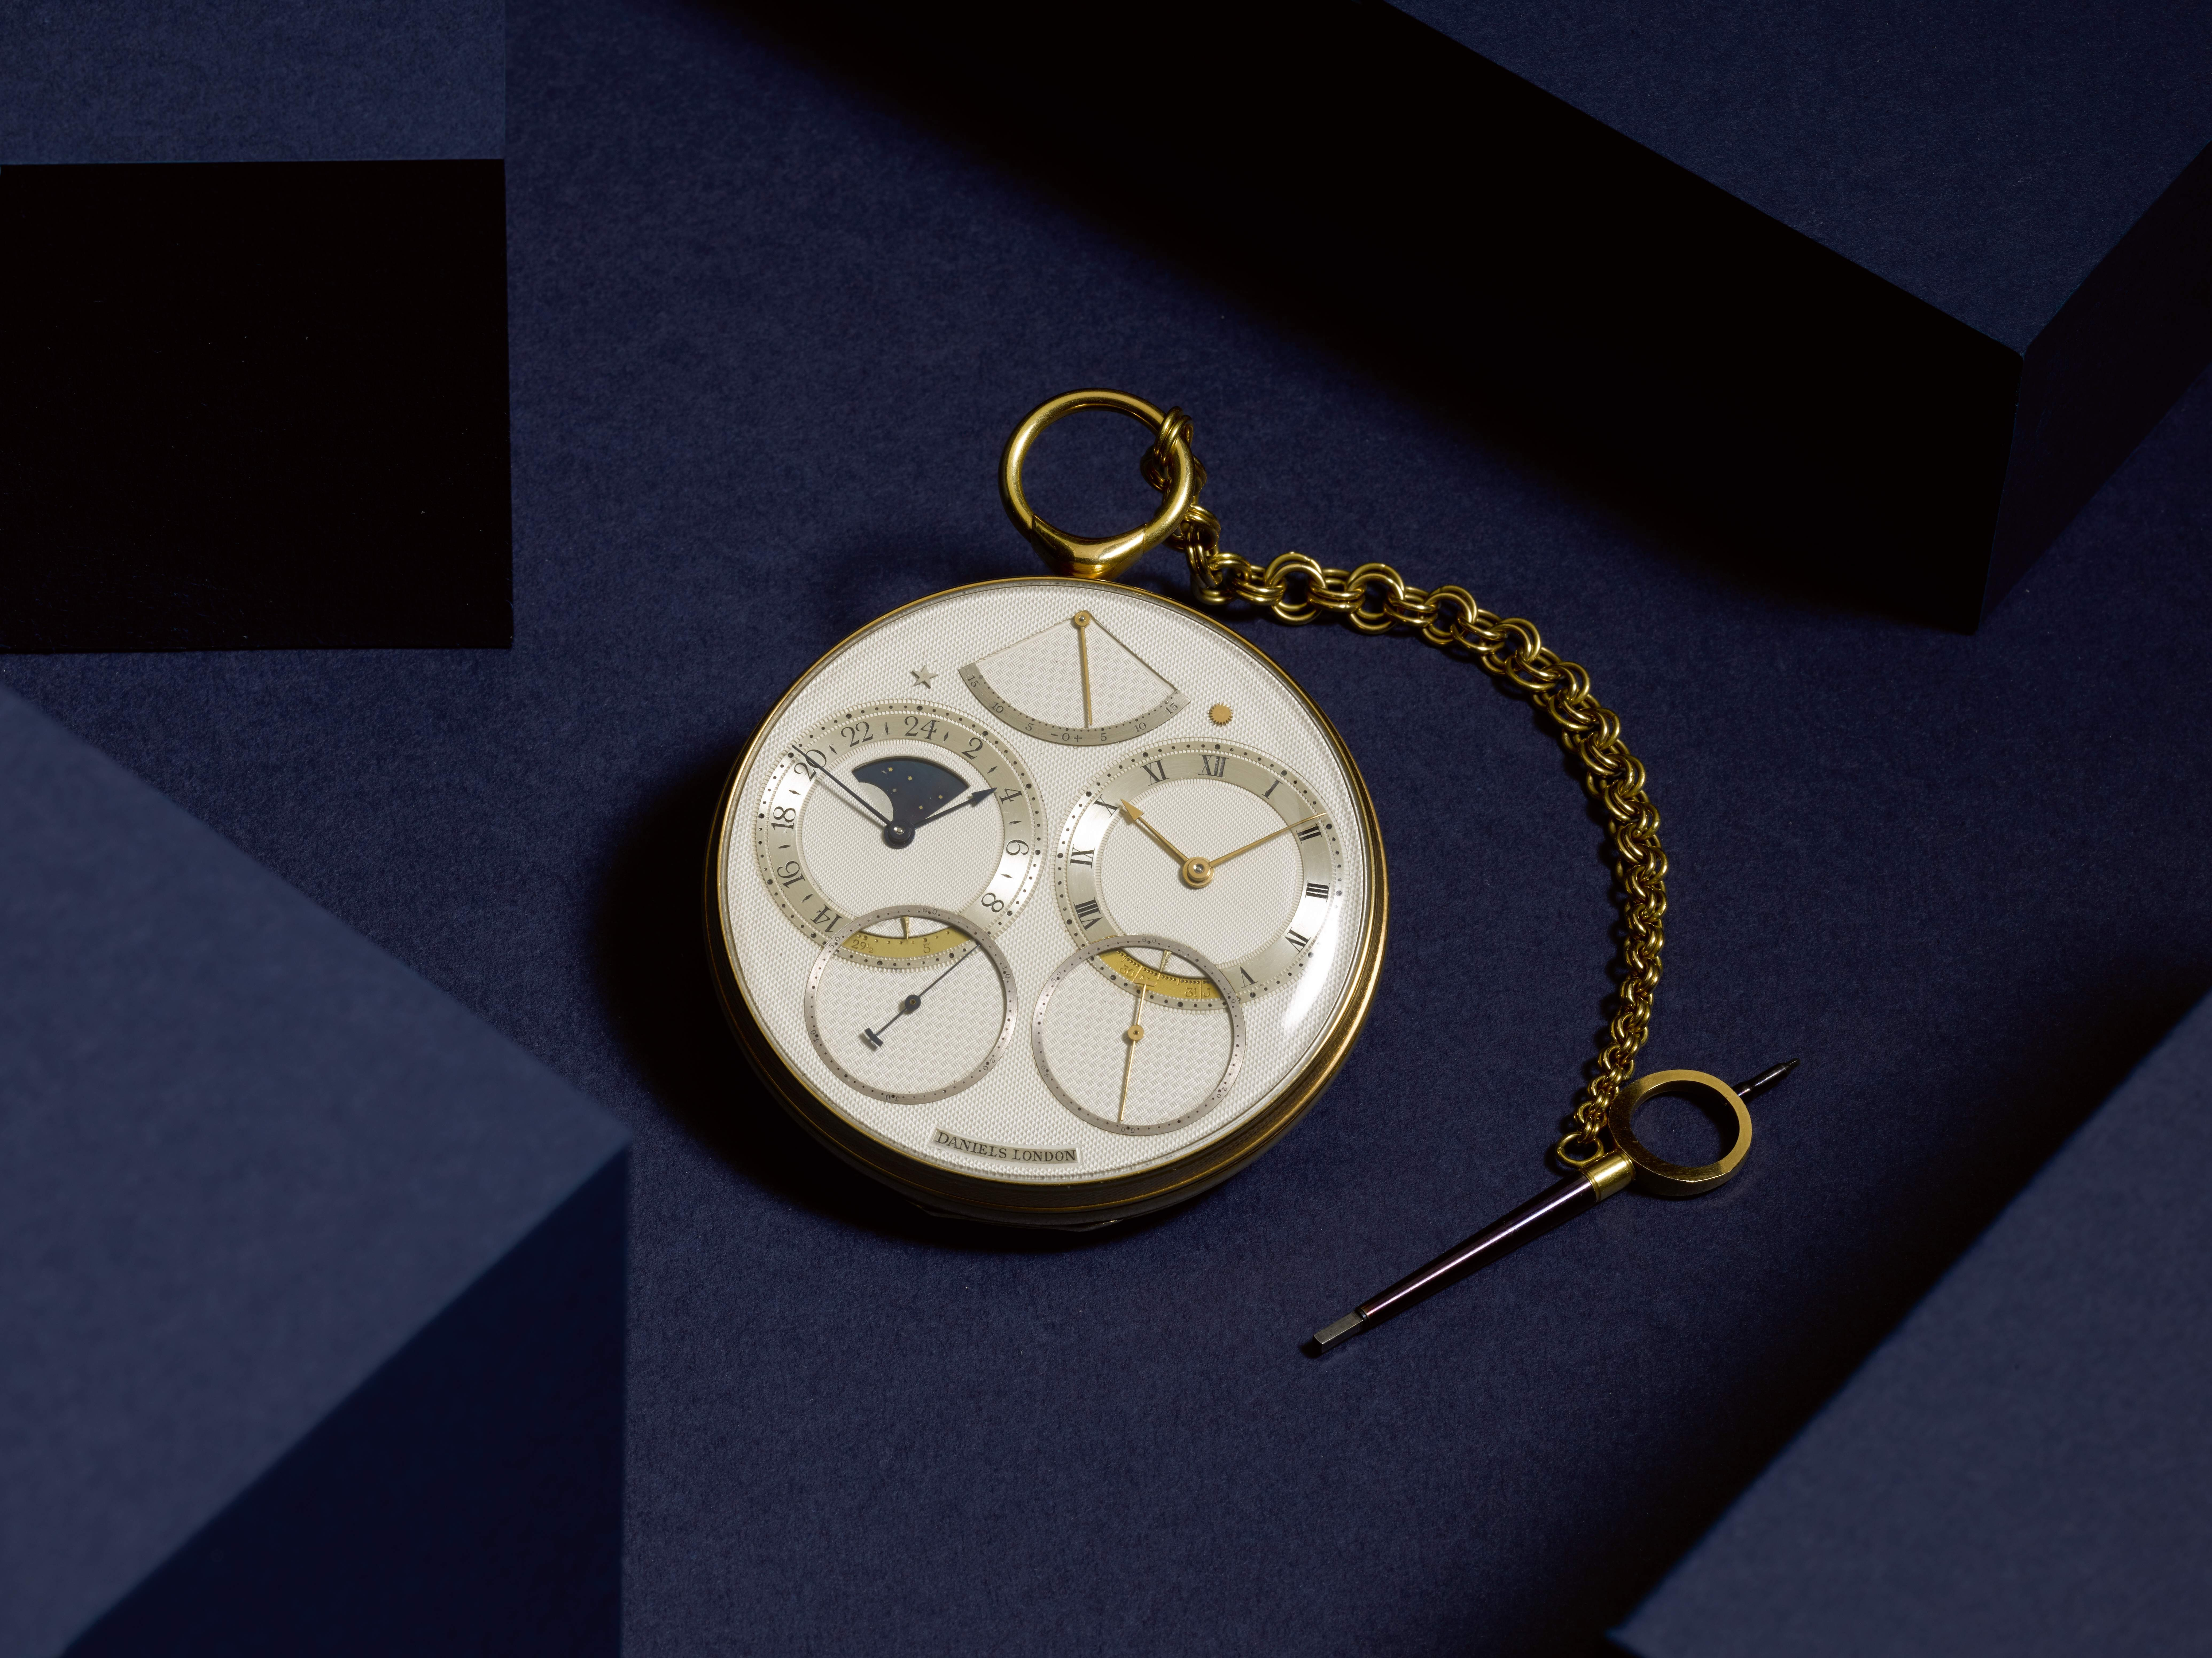 George Daniels Space Traveller 1 pocket watch, inspired by